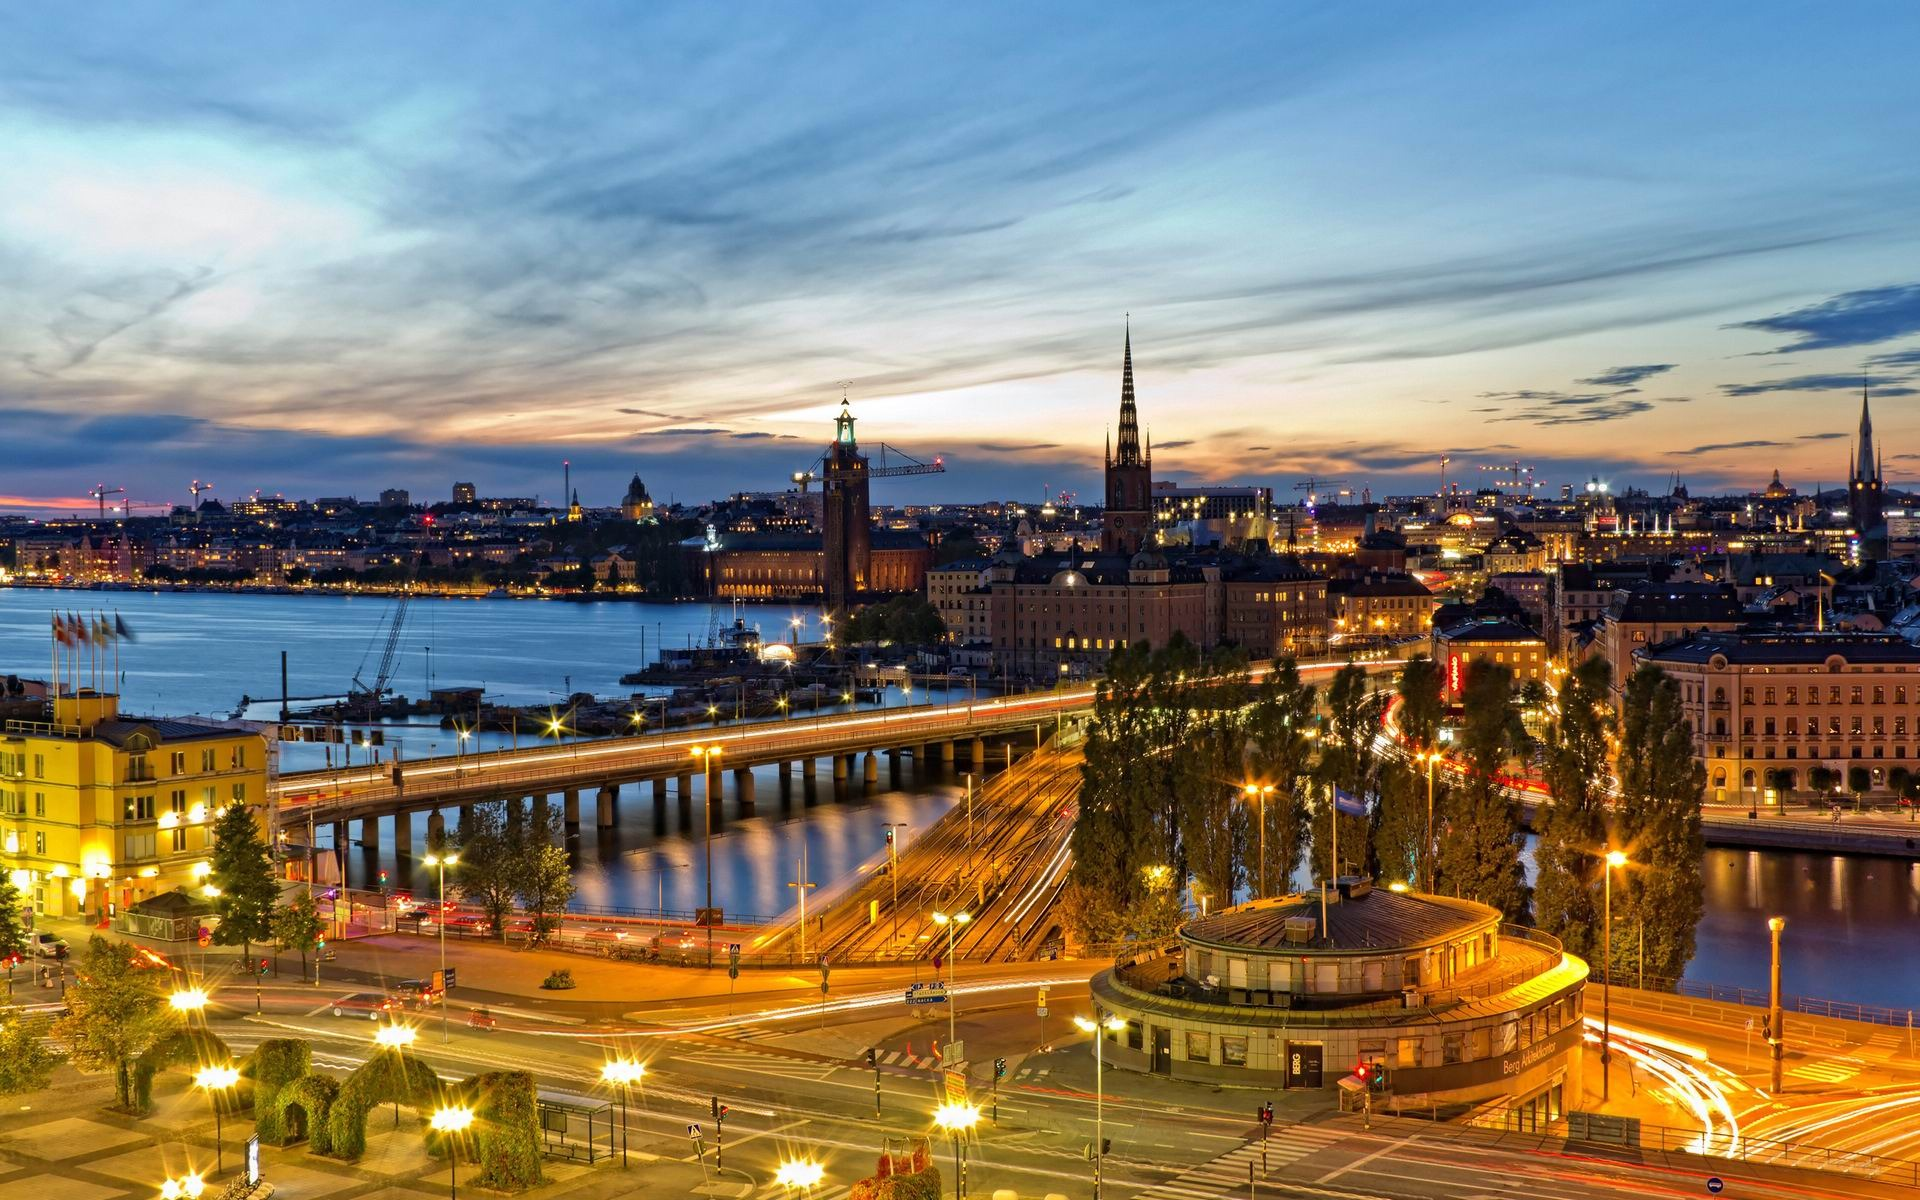 Sweden Desktop Wallpapers   HD Wallpapers Backgrounds of Your Choice 1920x1200